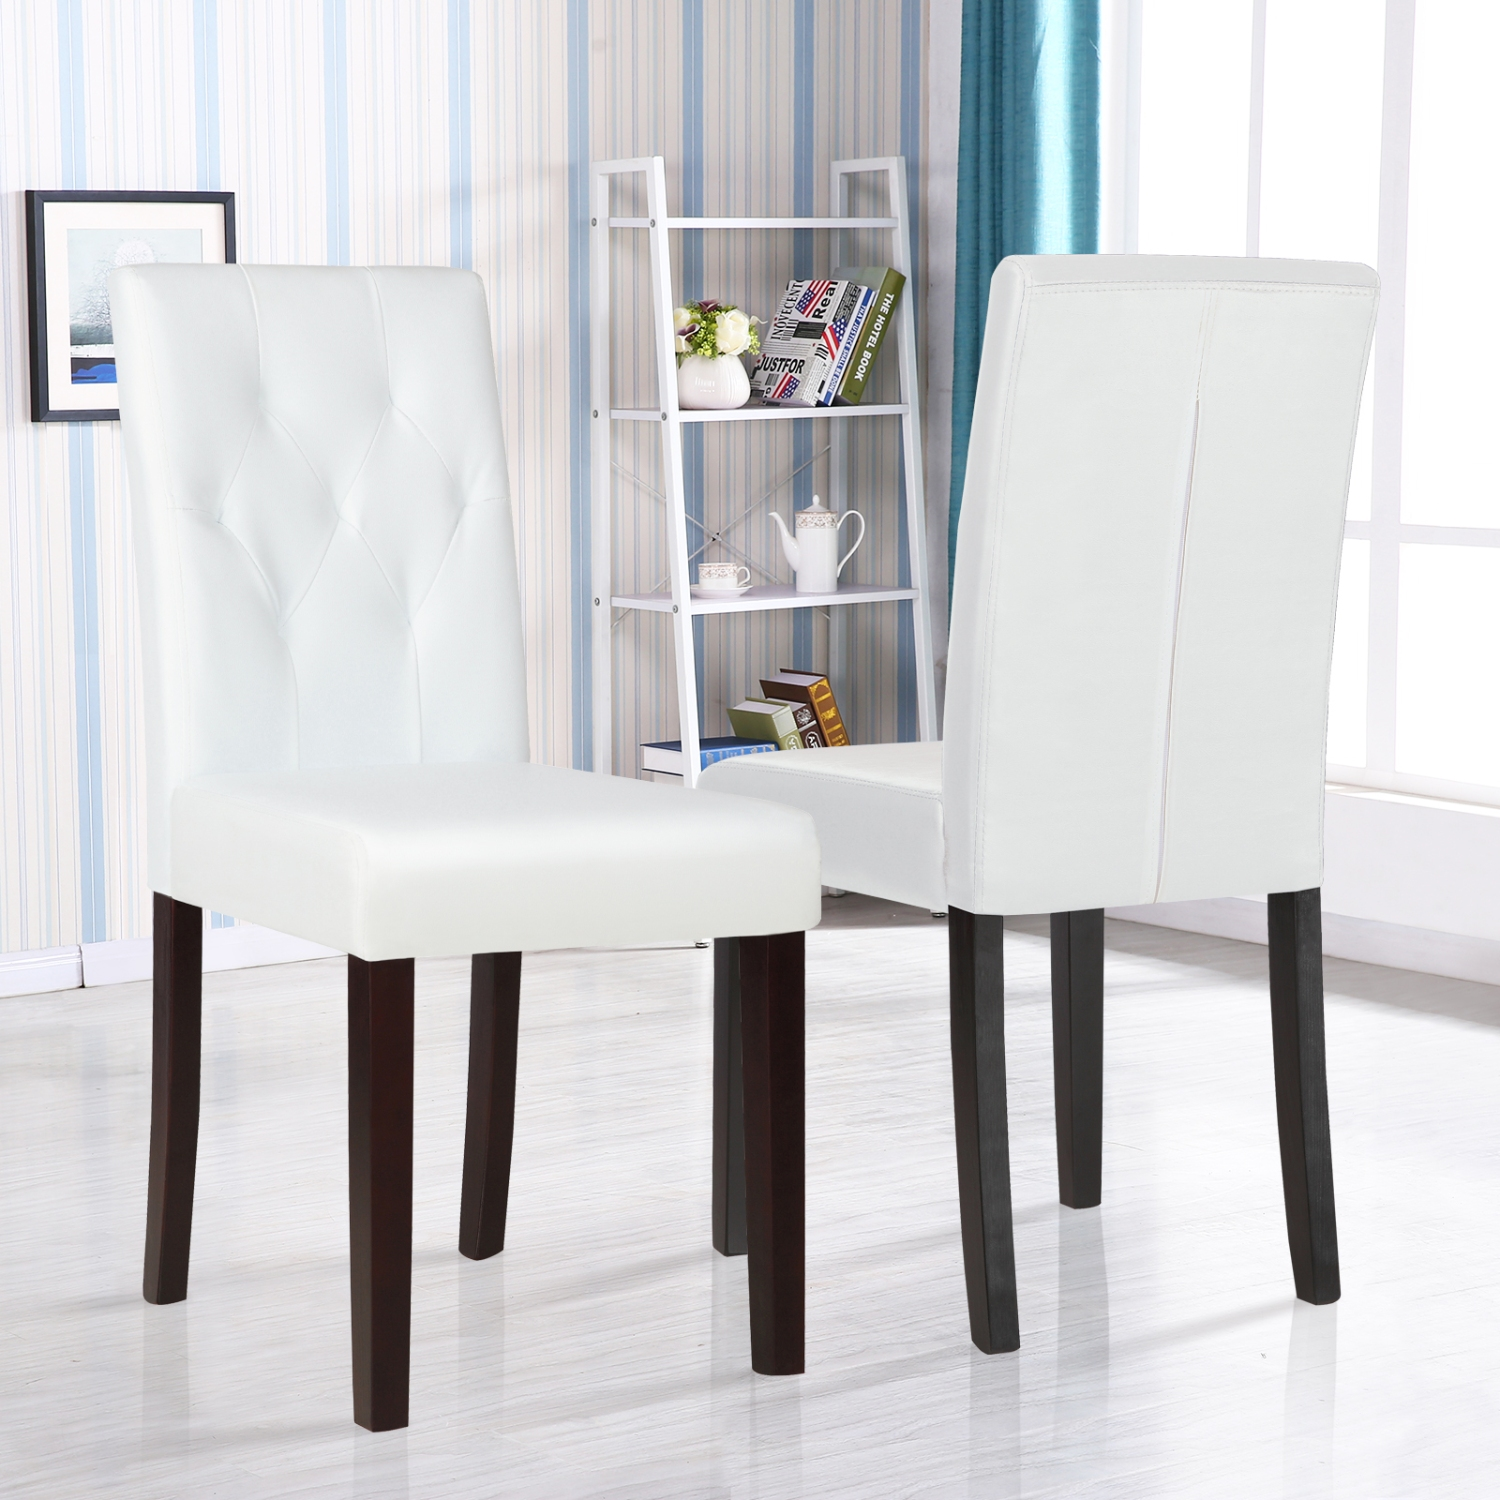 Dining Room Chairs Leather Set Of 2 Ivory White Leather Dining Room Chair Kitchen